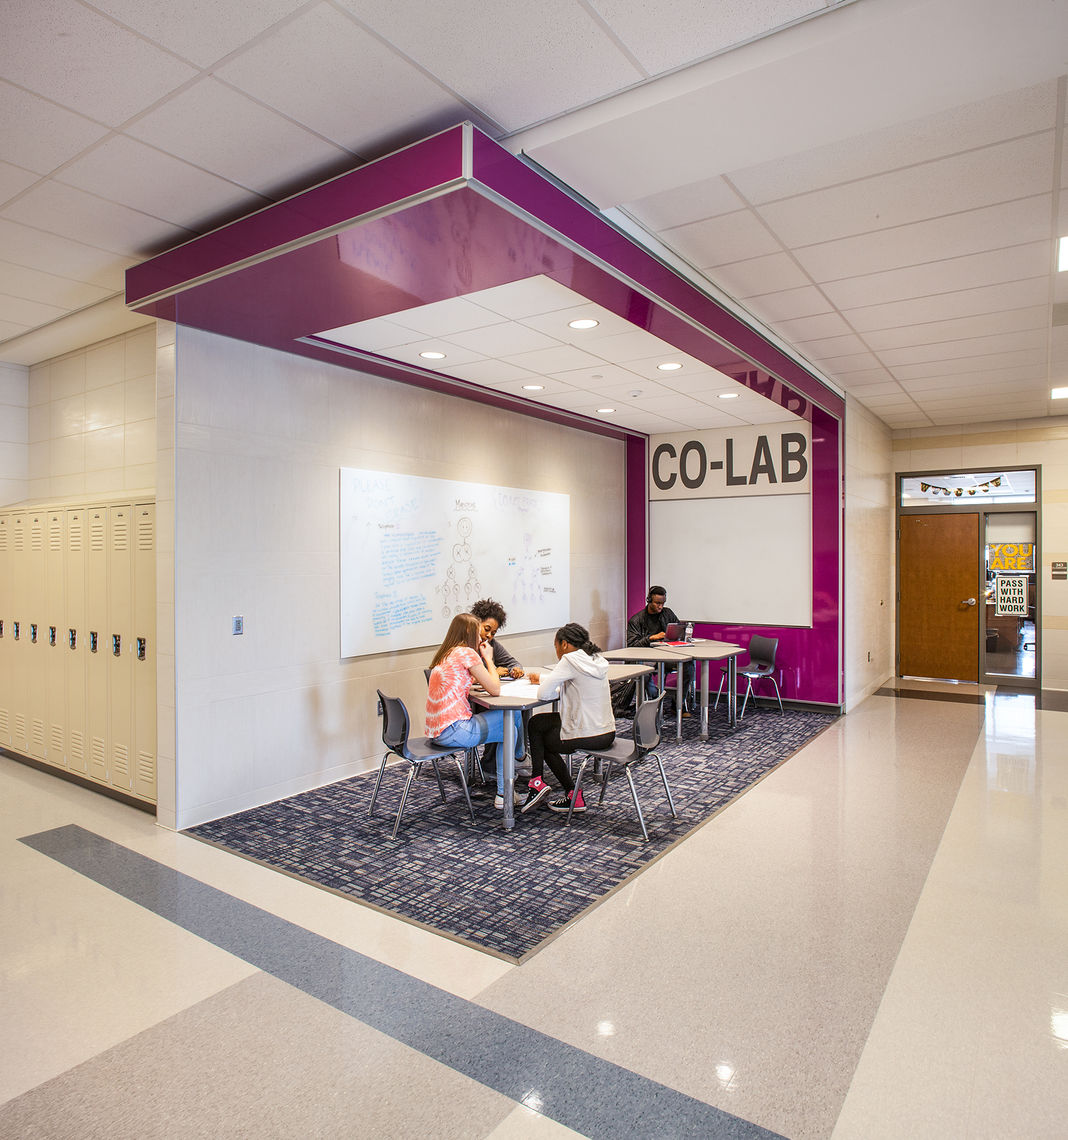 Collaboration Labs: Open and informal group learning spaces for up to 10 people that facilitate project-based learning and collaboration.